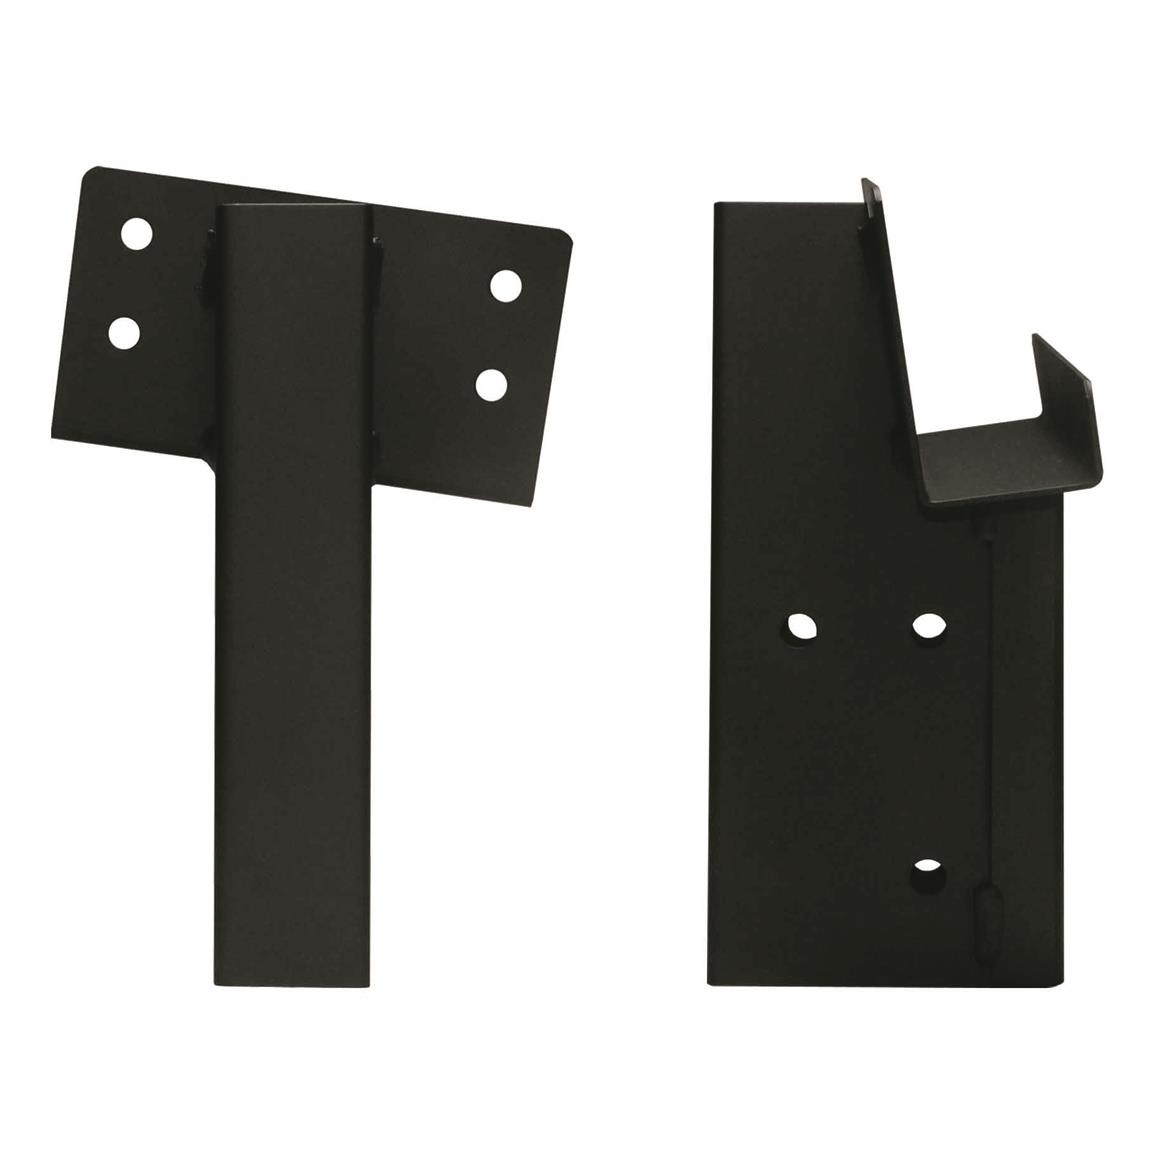 Compound 2x4 Angle Elevator Brackets, 4 Pack